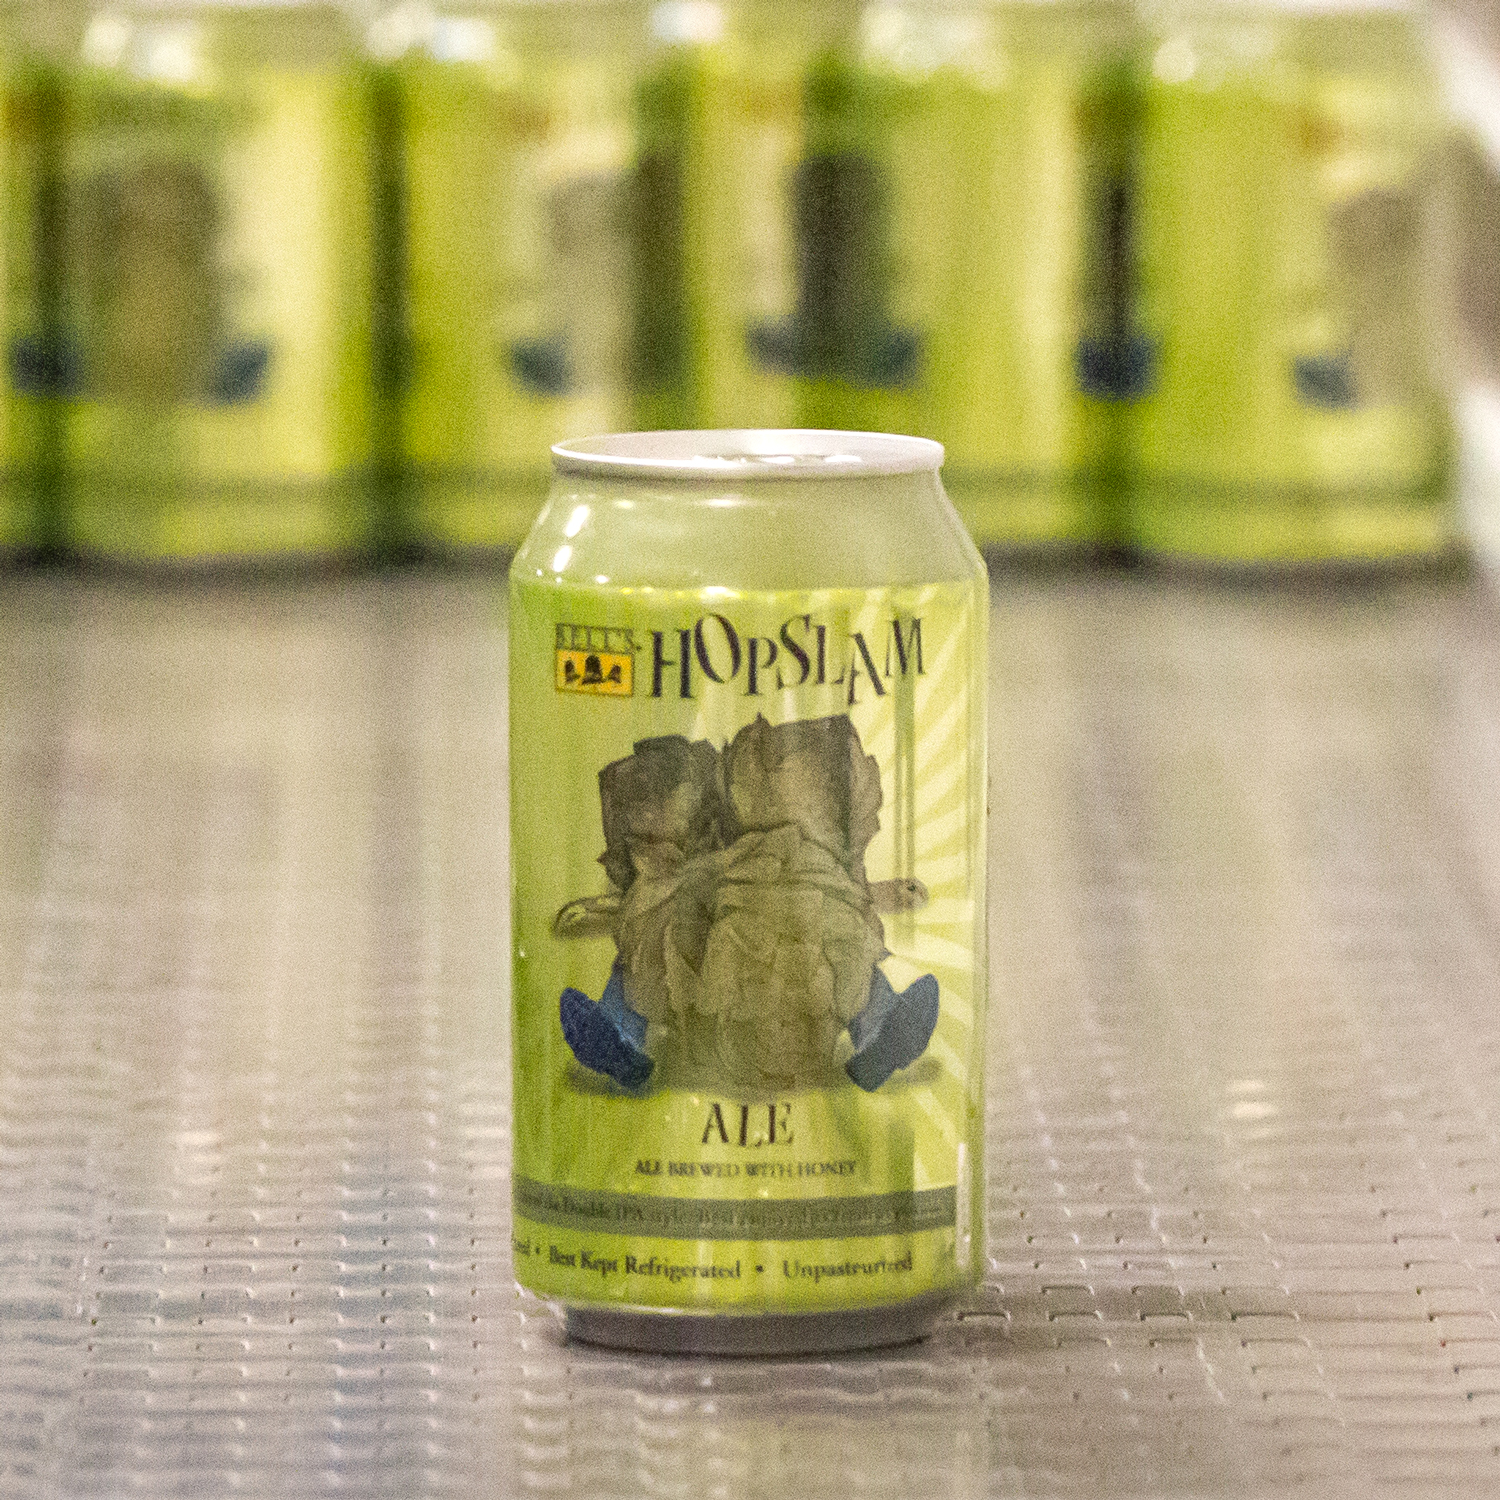 Michigan: Bell's Hopslam Ale